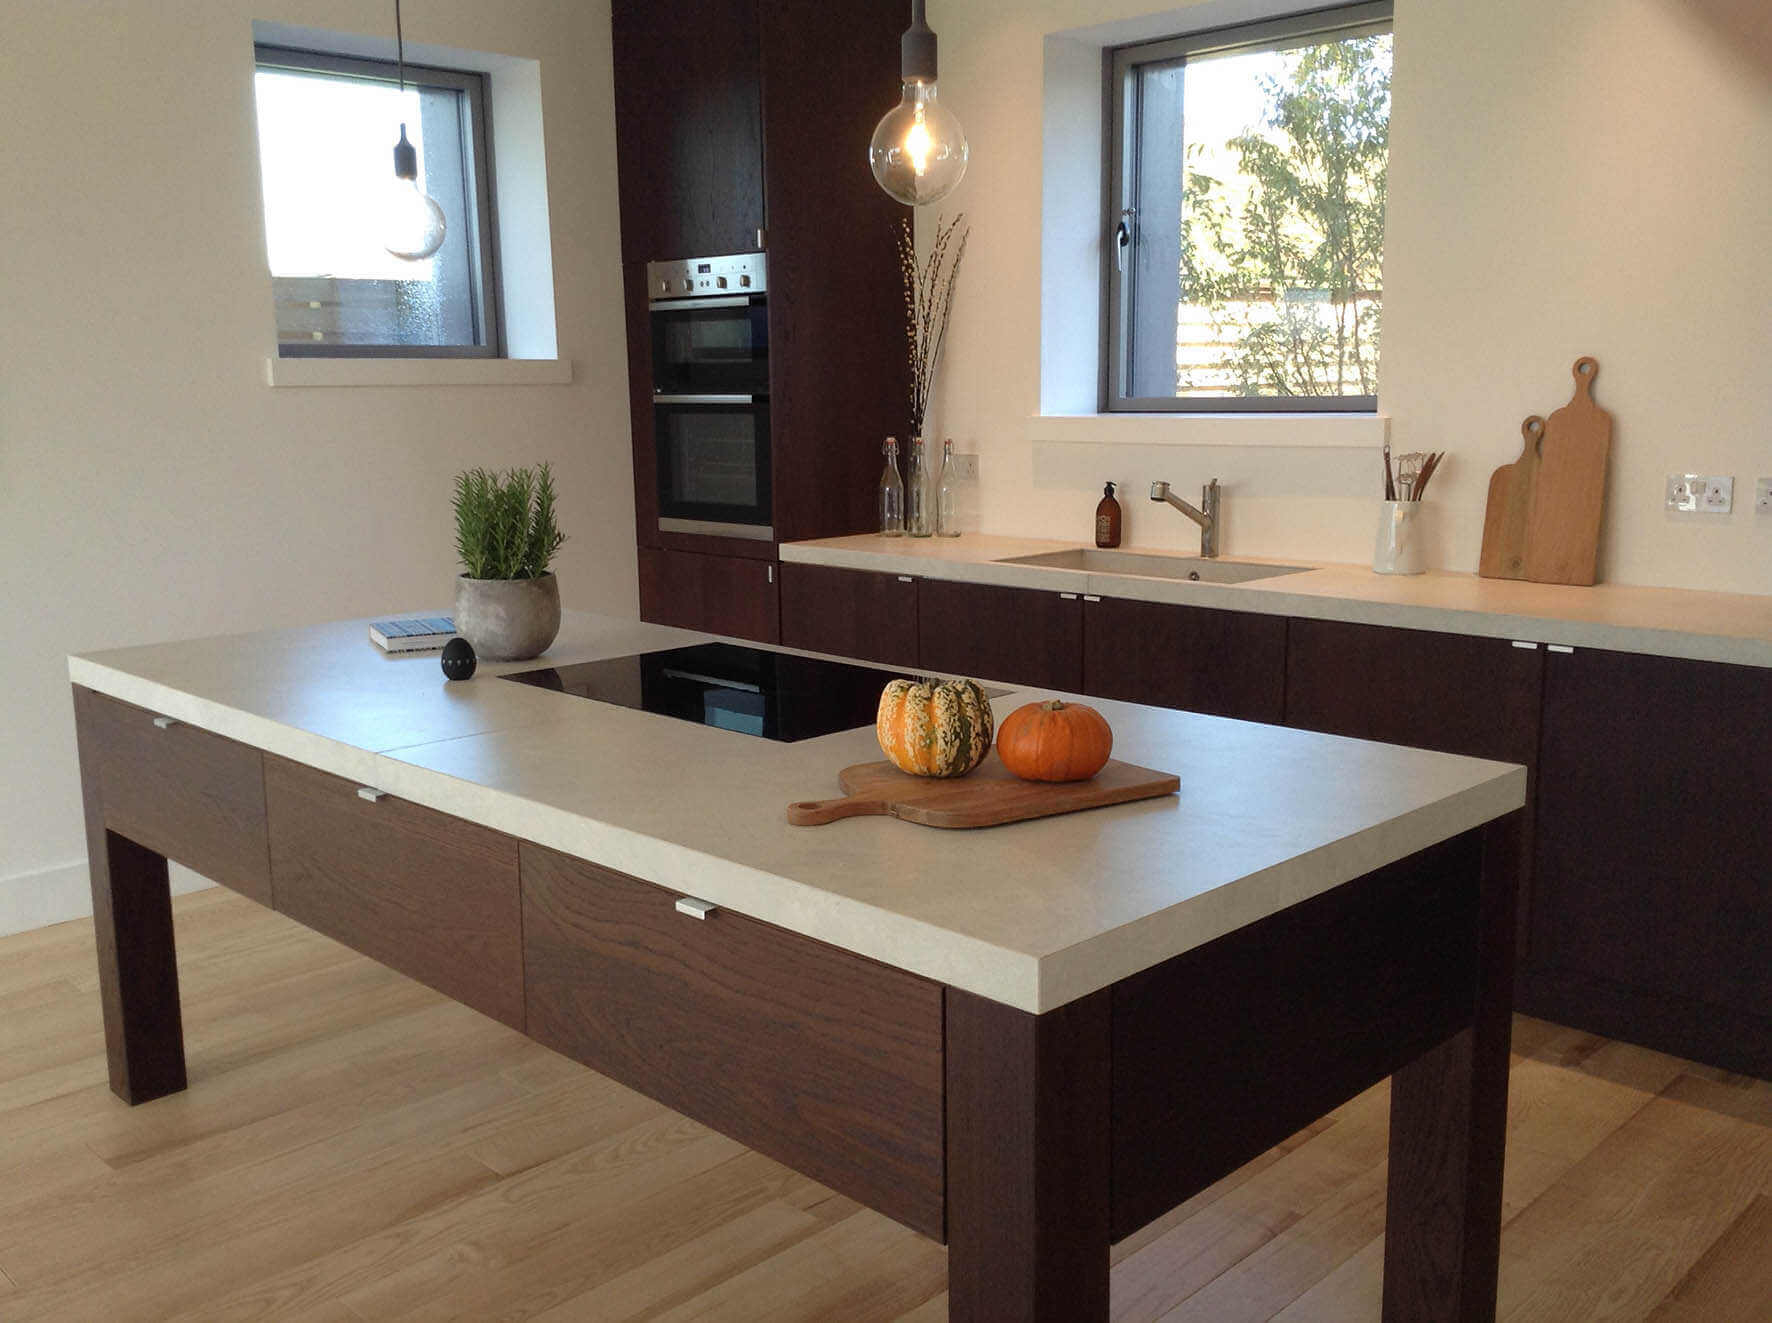 Top da cucina in gres porcellanato Coverlam